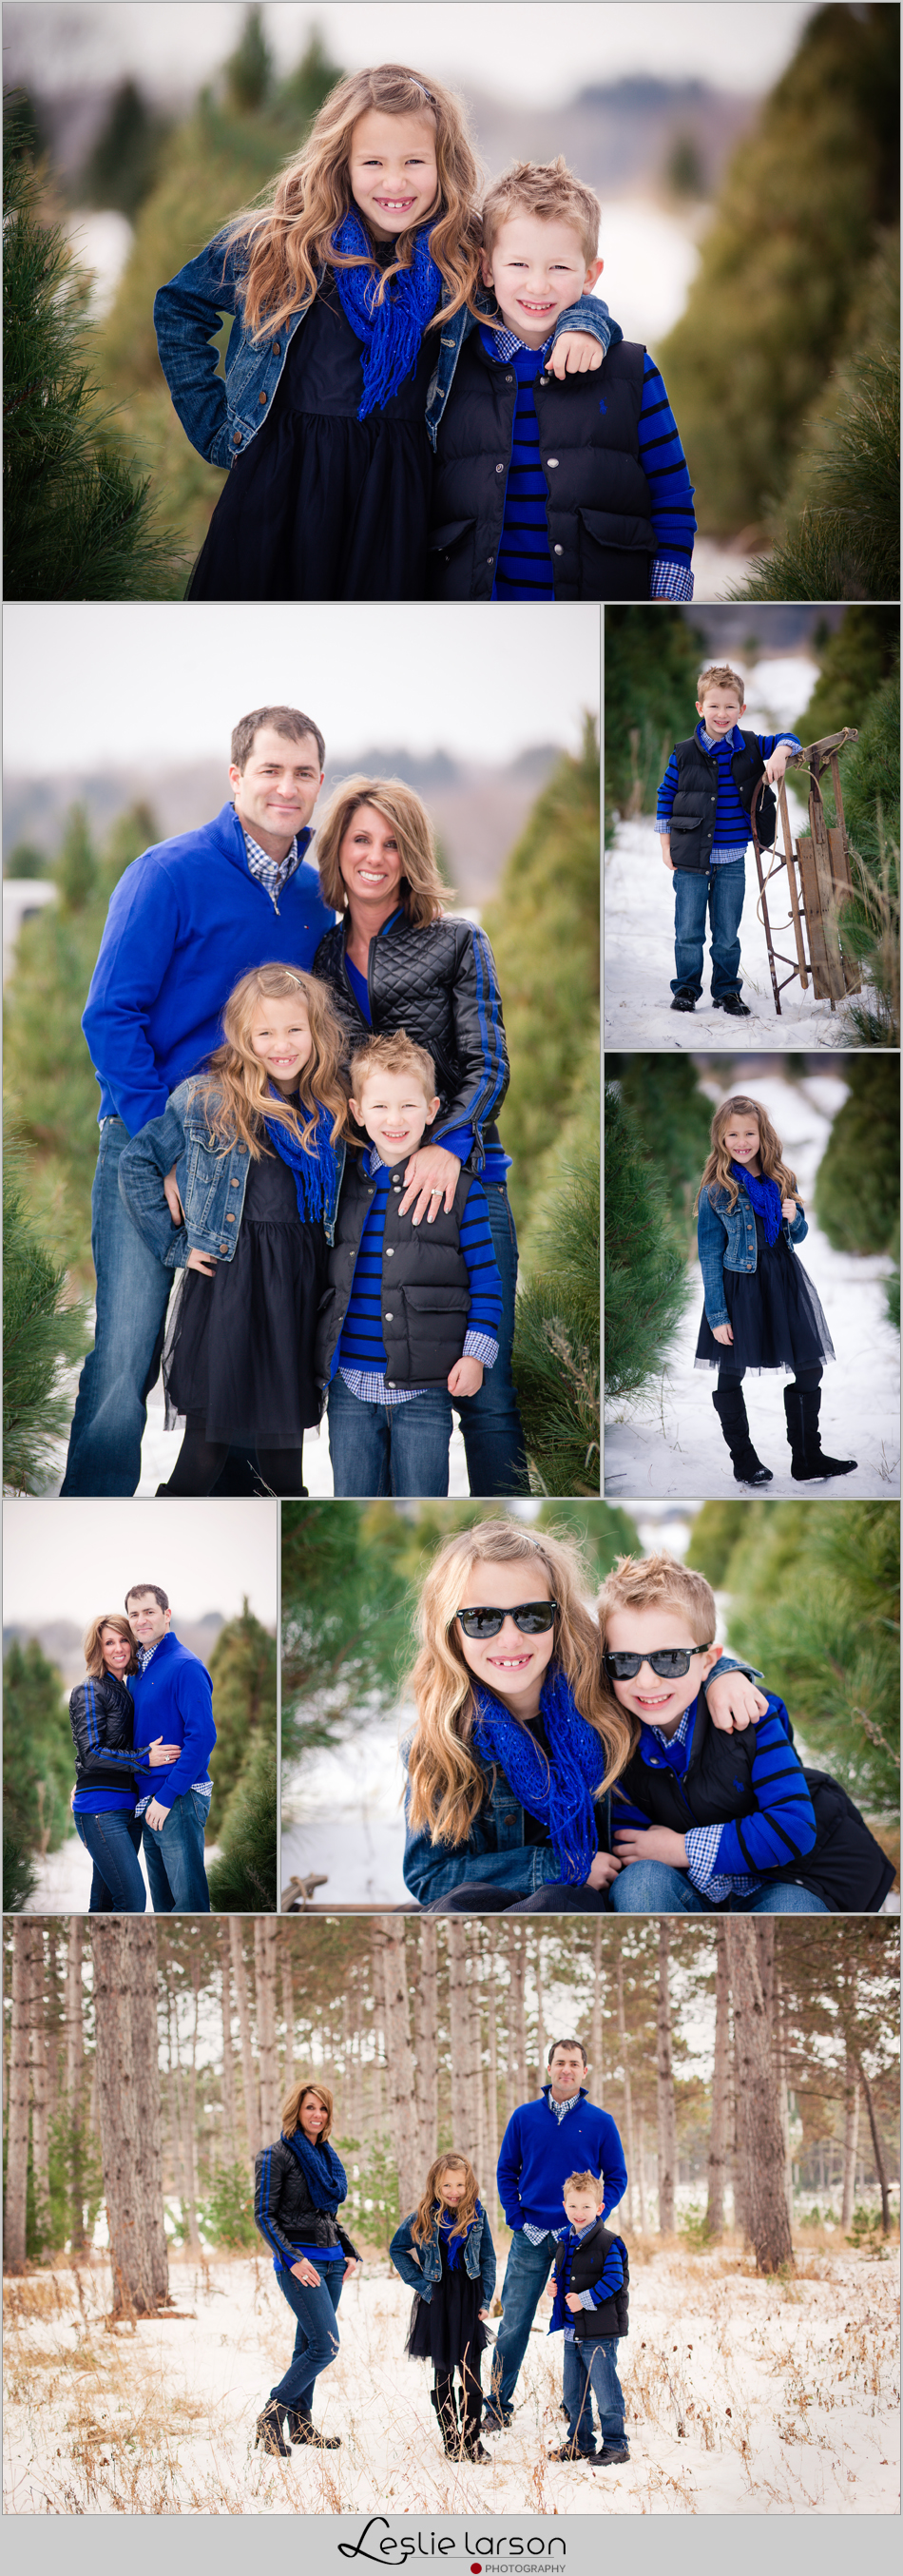 hansen tree farm christmas leslie larson photography